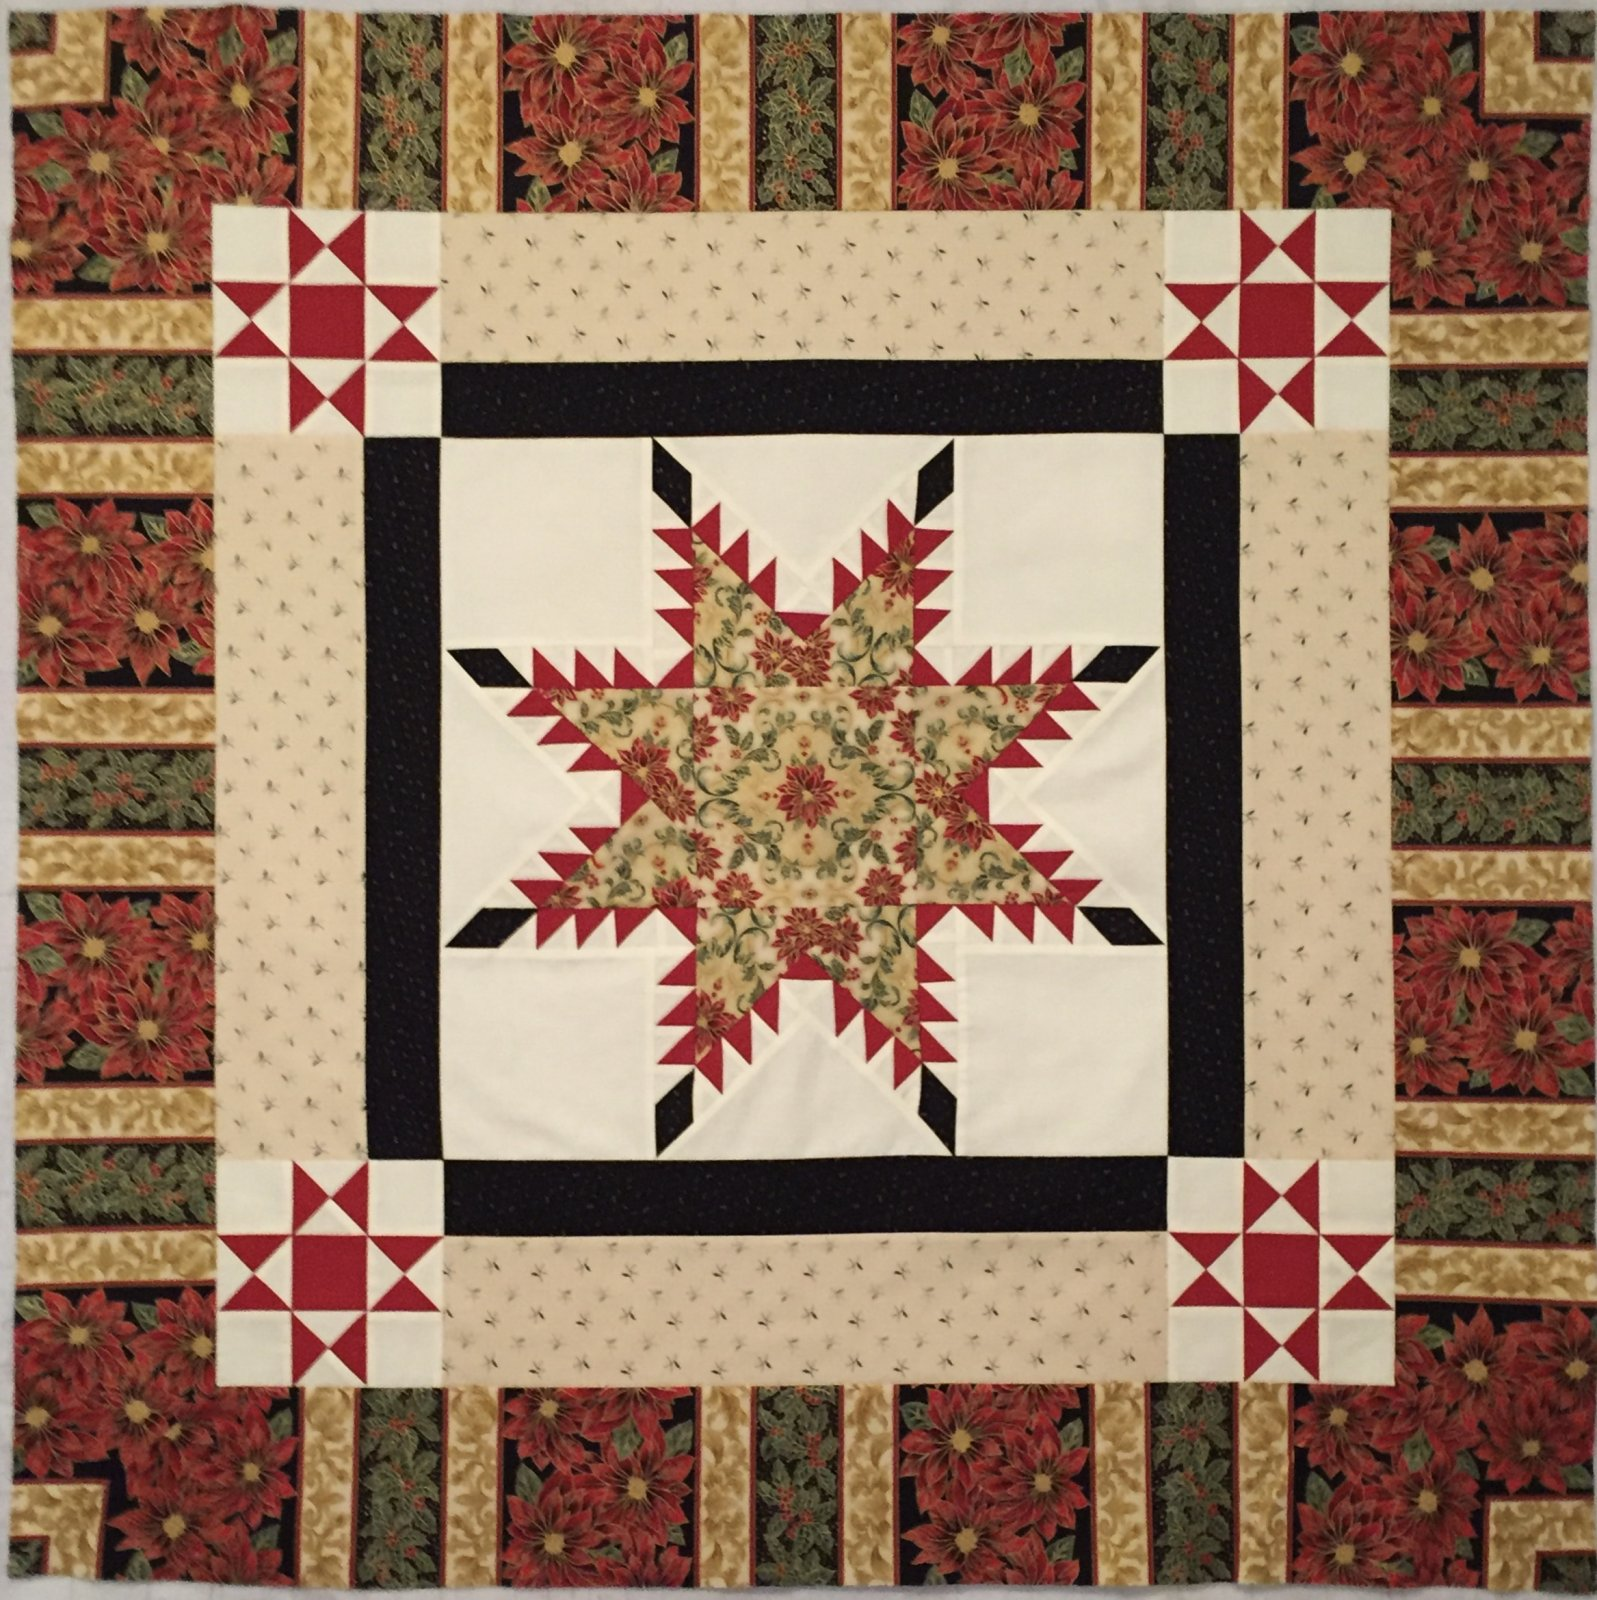 Feathered Star Wall Quilt Kit (42 x 42) - Christmas